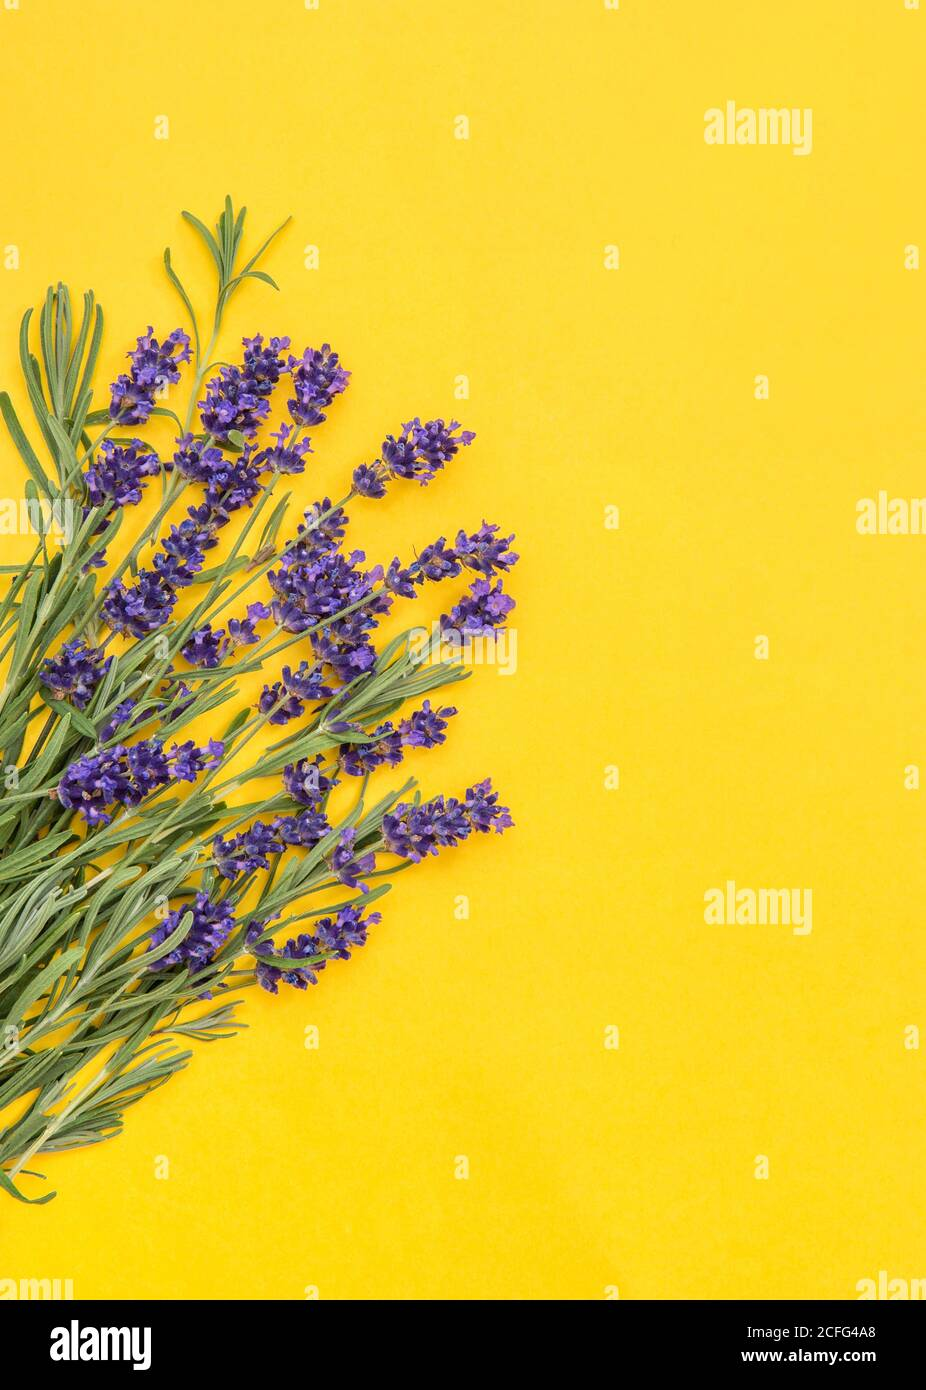 Lavender flowers on yellow background. Floral botanical border Stock Photo